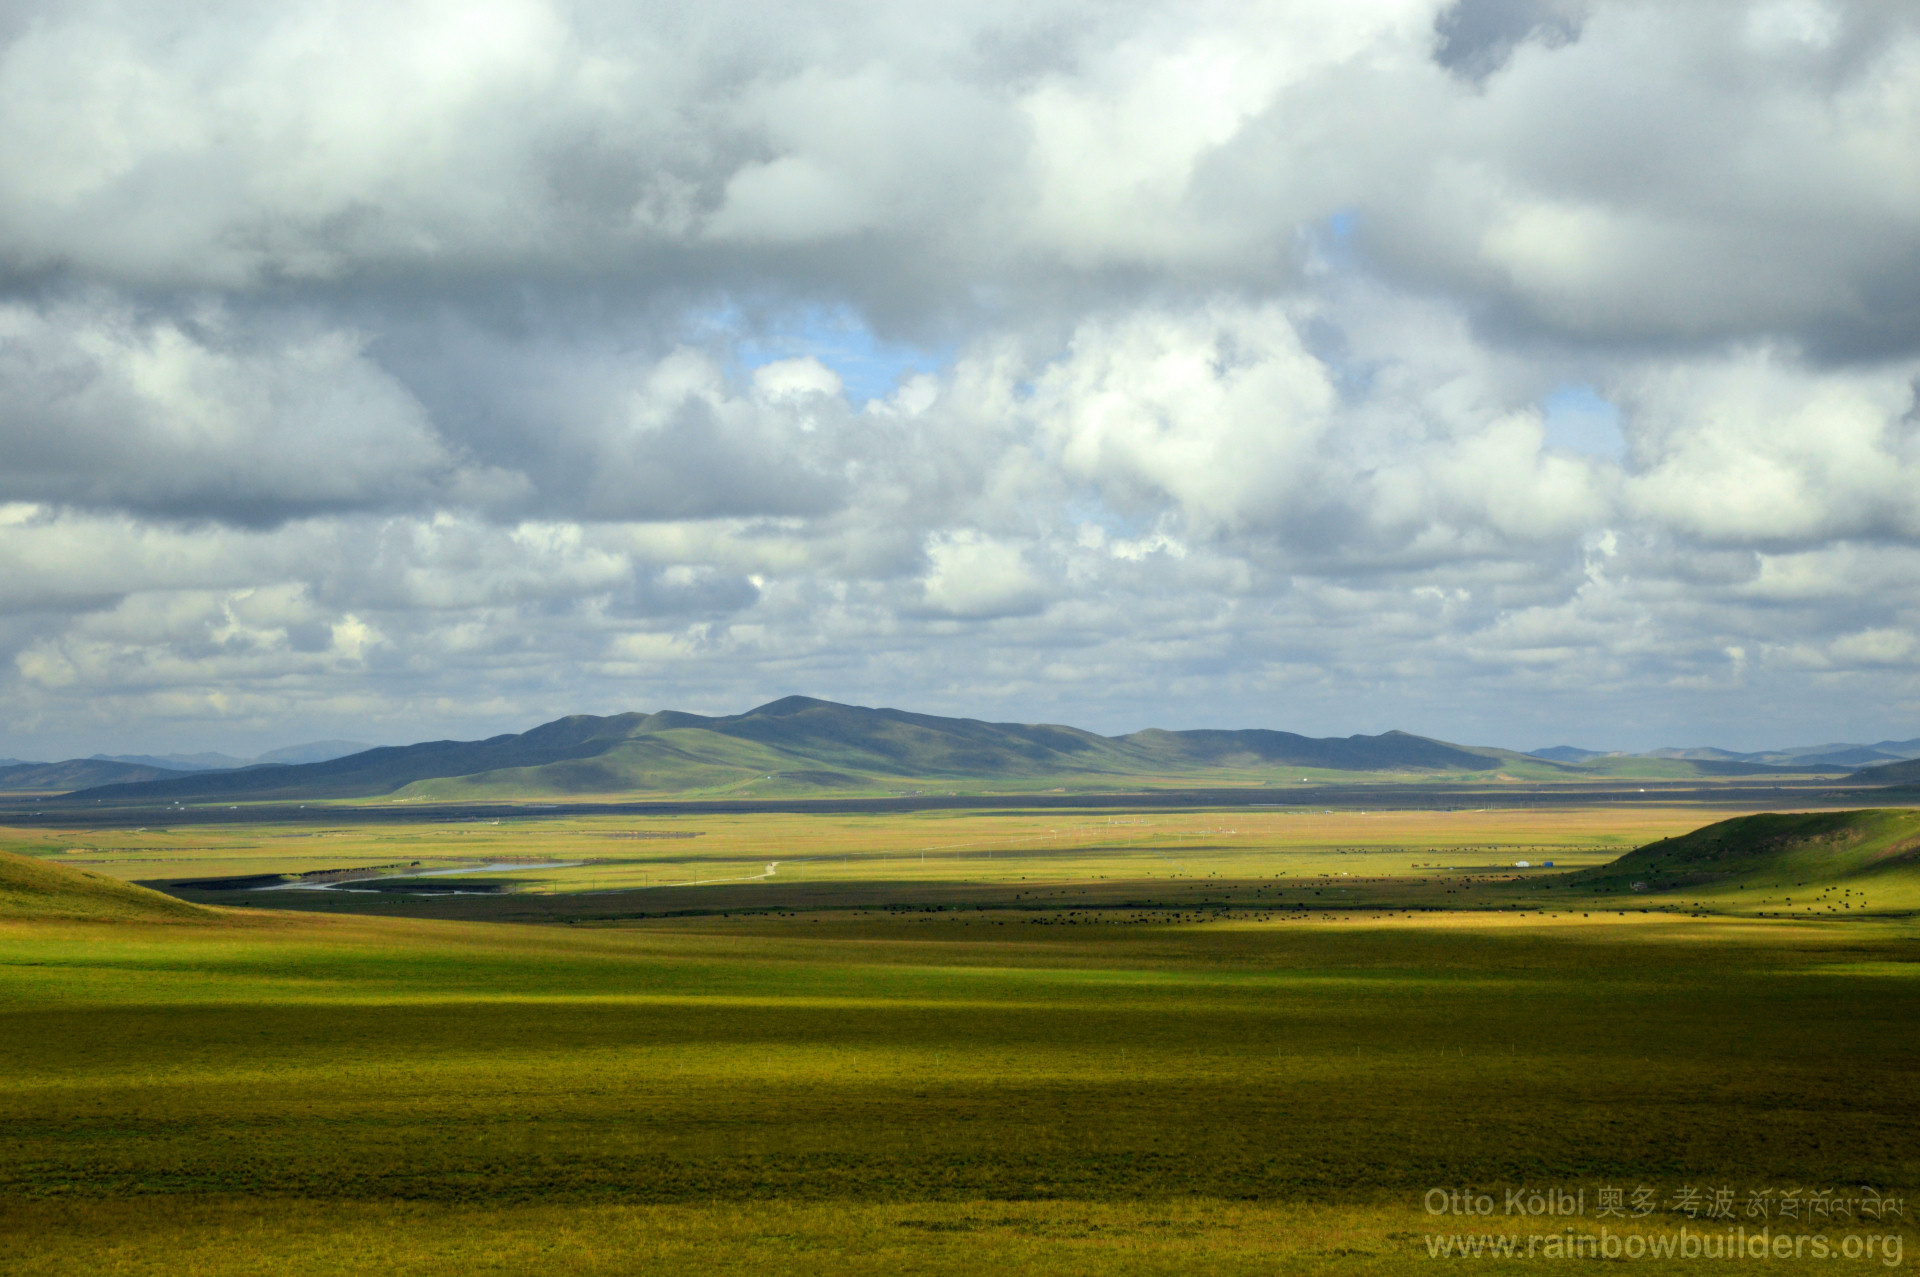 A typical Tibetan high plateau landscape: flat areas alternate with soft hills. Only a minor part of the Tibetan areas is made of steep mountains and deep canyons.